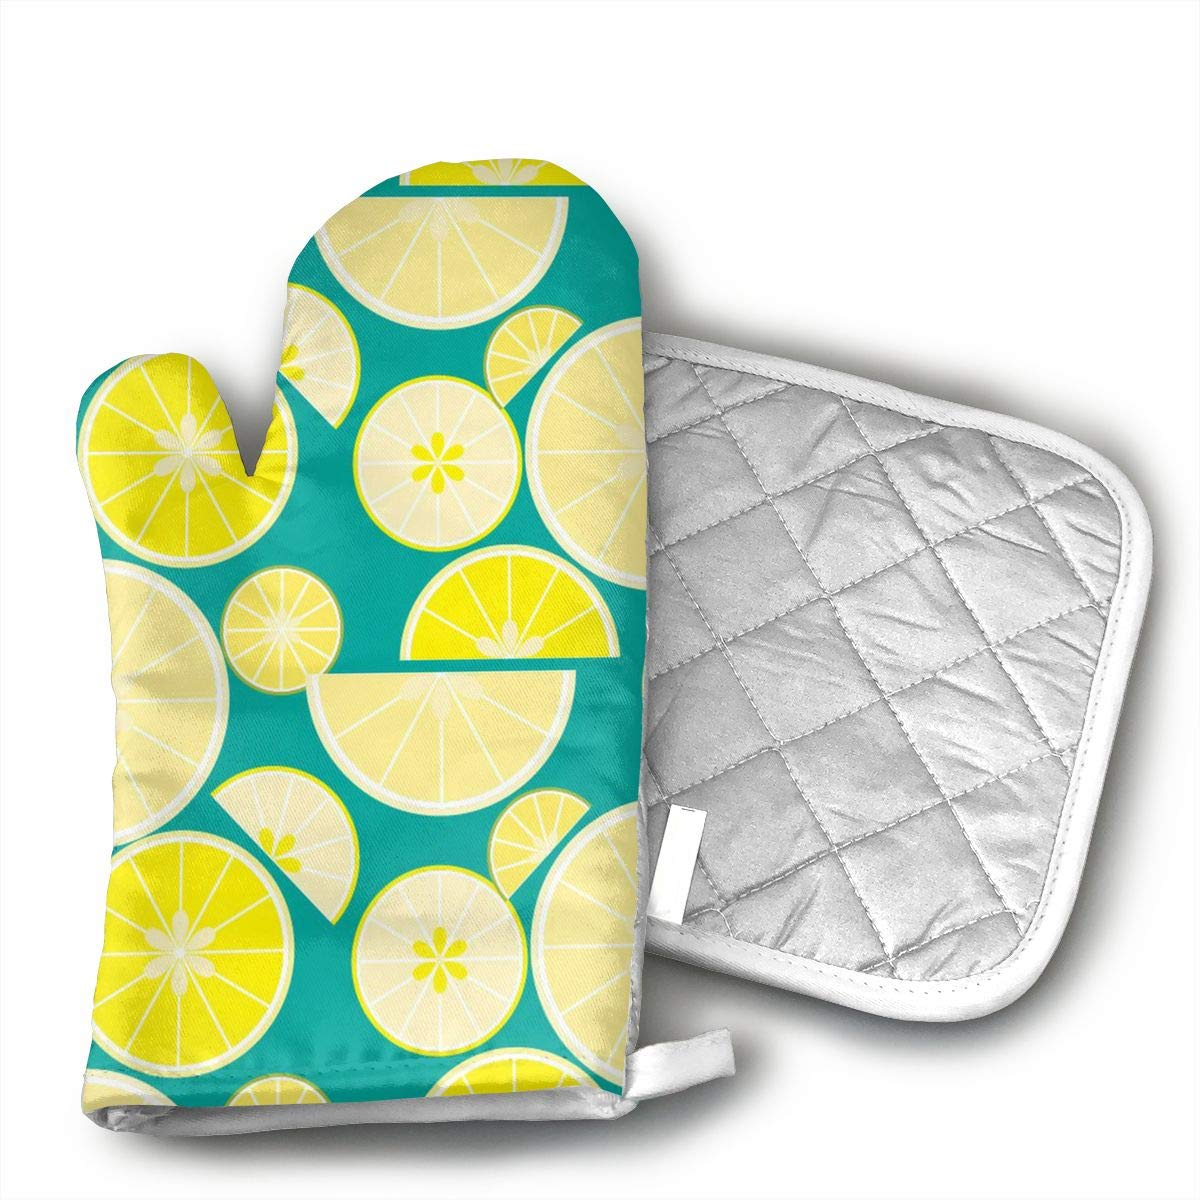 Xayeu Delicious Summer Lemon Oven Mitts Kitchen Cooking Cotton Microwave Oven Gloves Mitts Pot Pad Heat Proof Protected Gloves